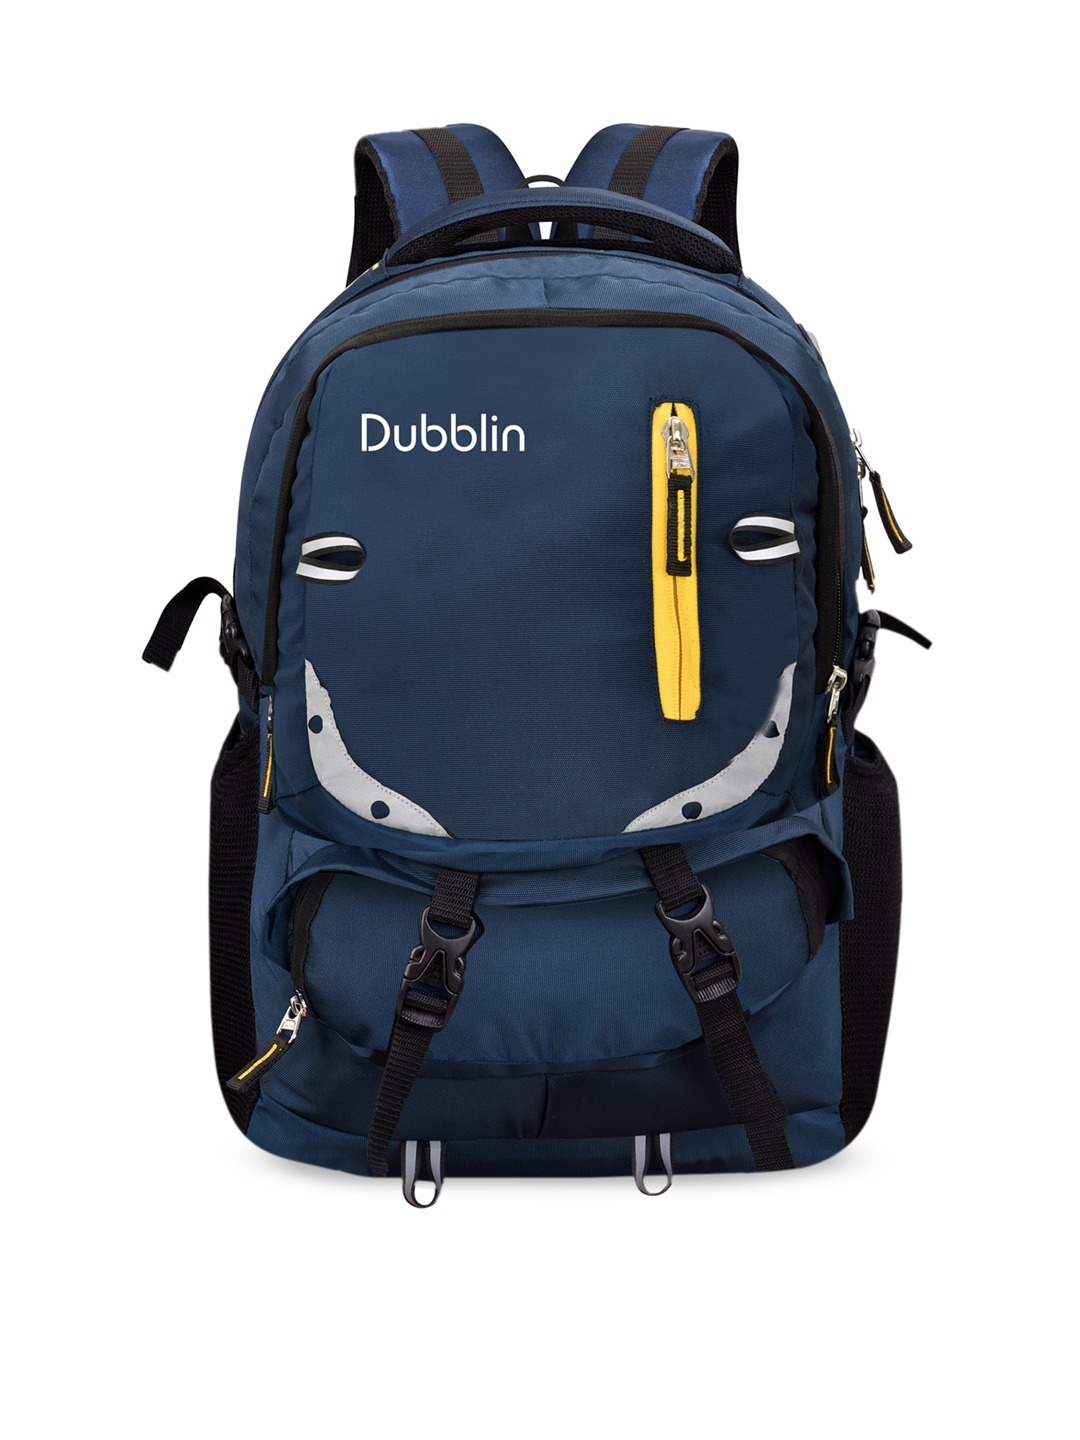 Dubblin Unisex Blue   Yellow Contrast Detail Backpacks